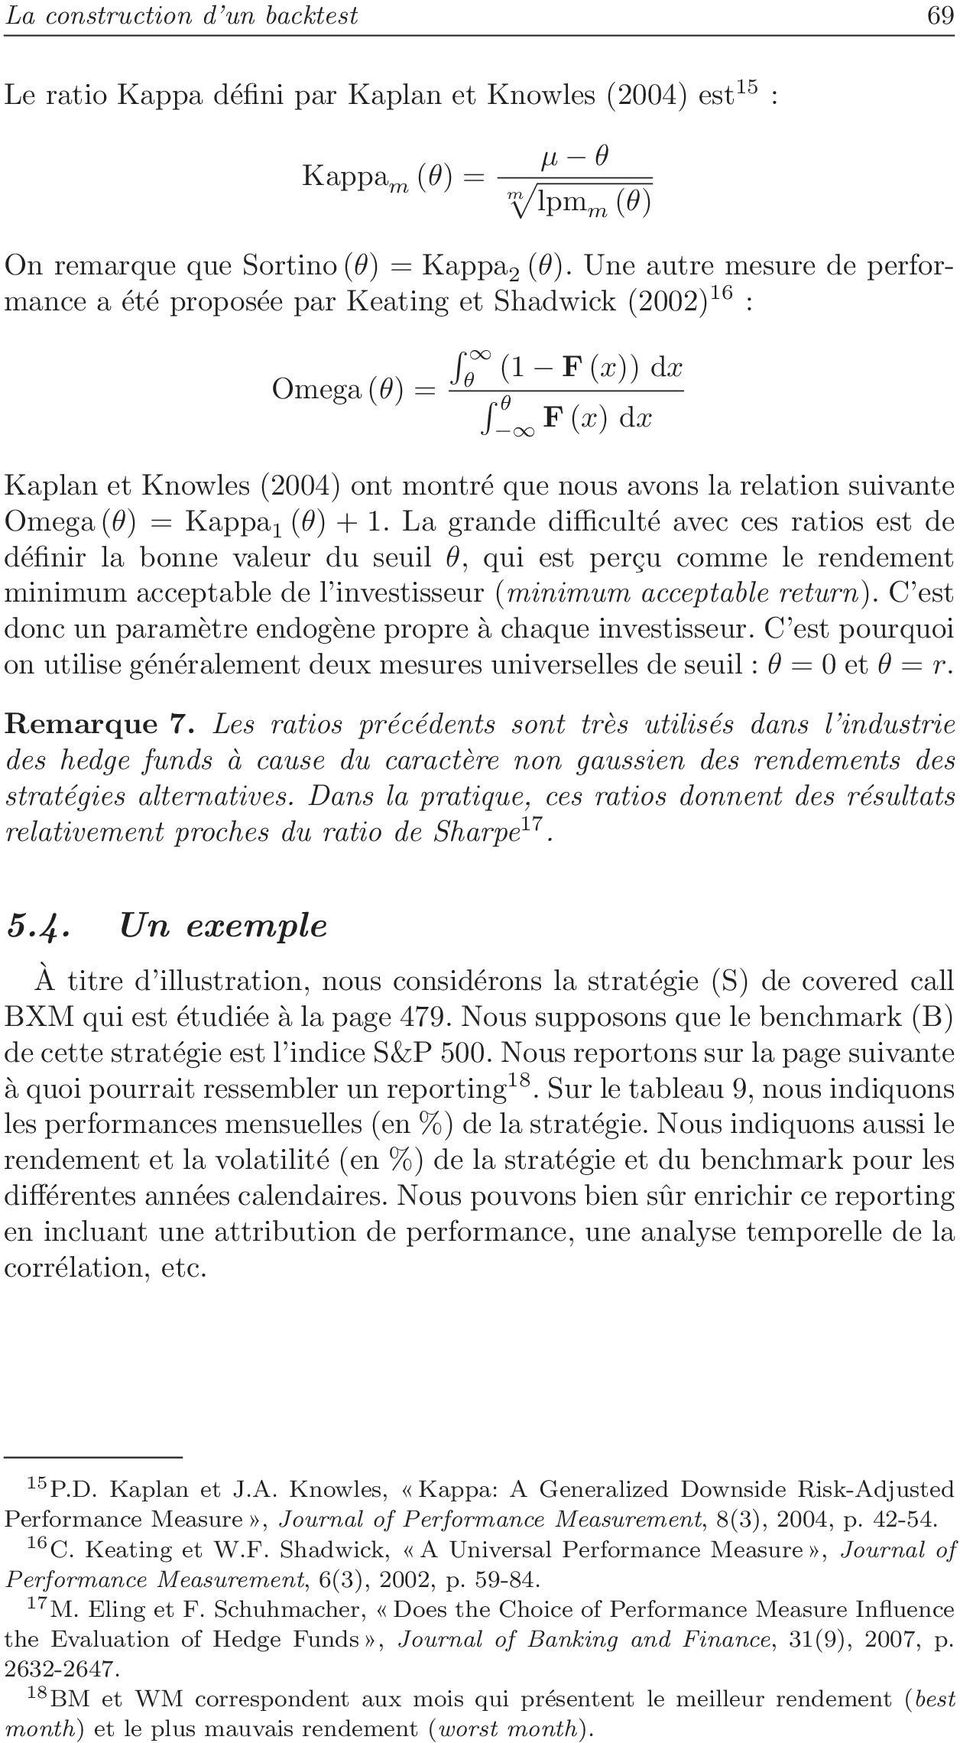 = Kappa 1 (θ) + 1. La grande difficulté avec ces ratios est de définir la bonne valeur du seuil θ, qui est perçu comme le rendement minimum acceptable de l investisseur (minimum acceptable return).